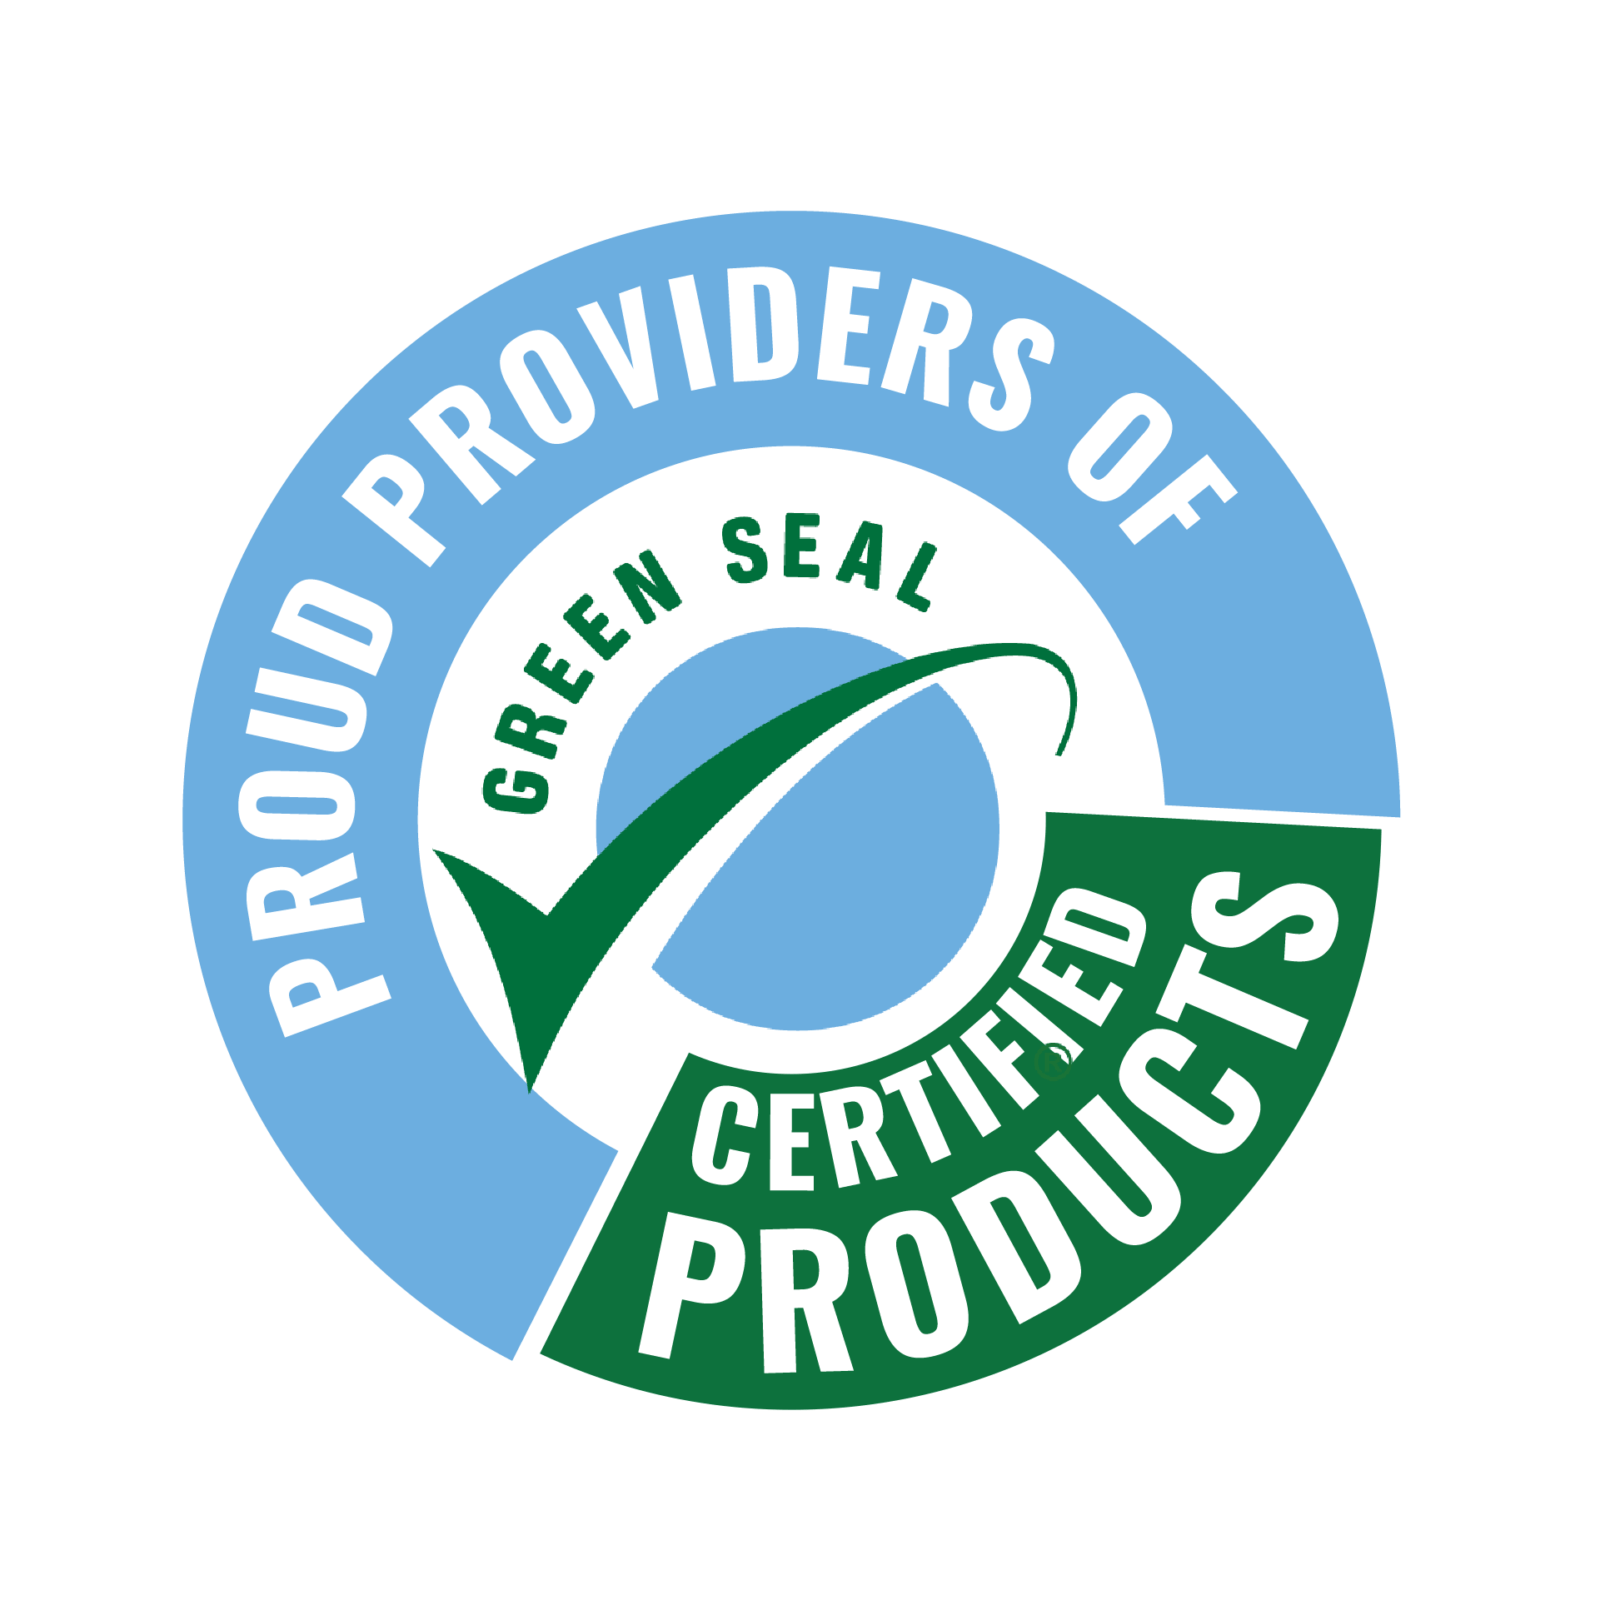 Green Seal Products Providers